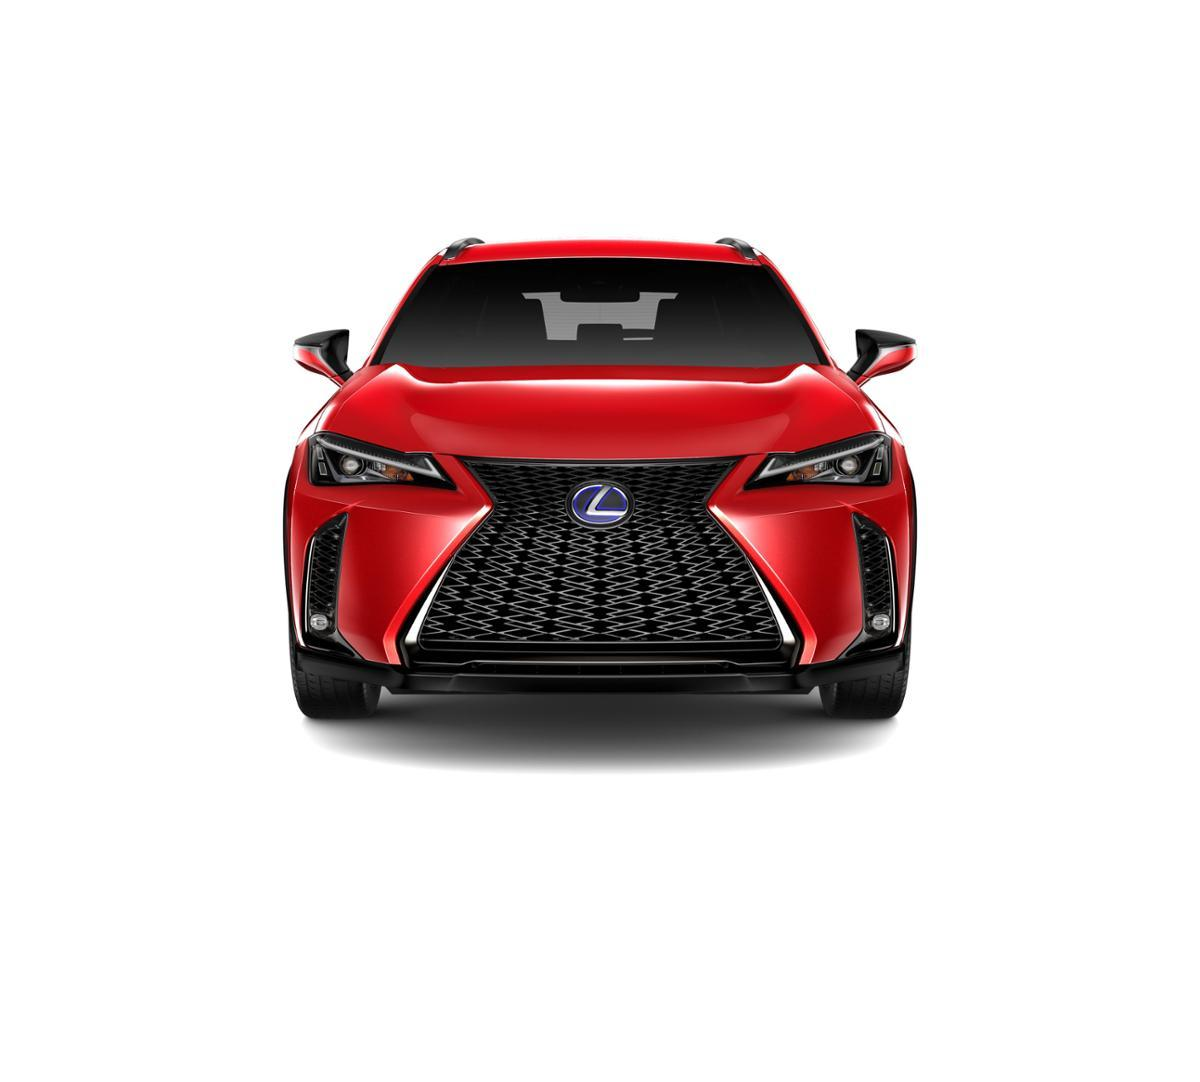 2019 Lexus UX 250h Vehicle Photo in Santa Monica, CA 90404